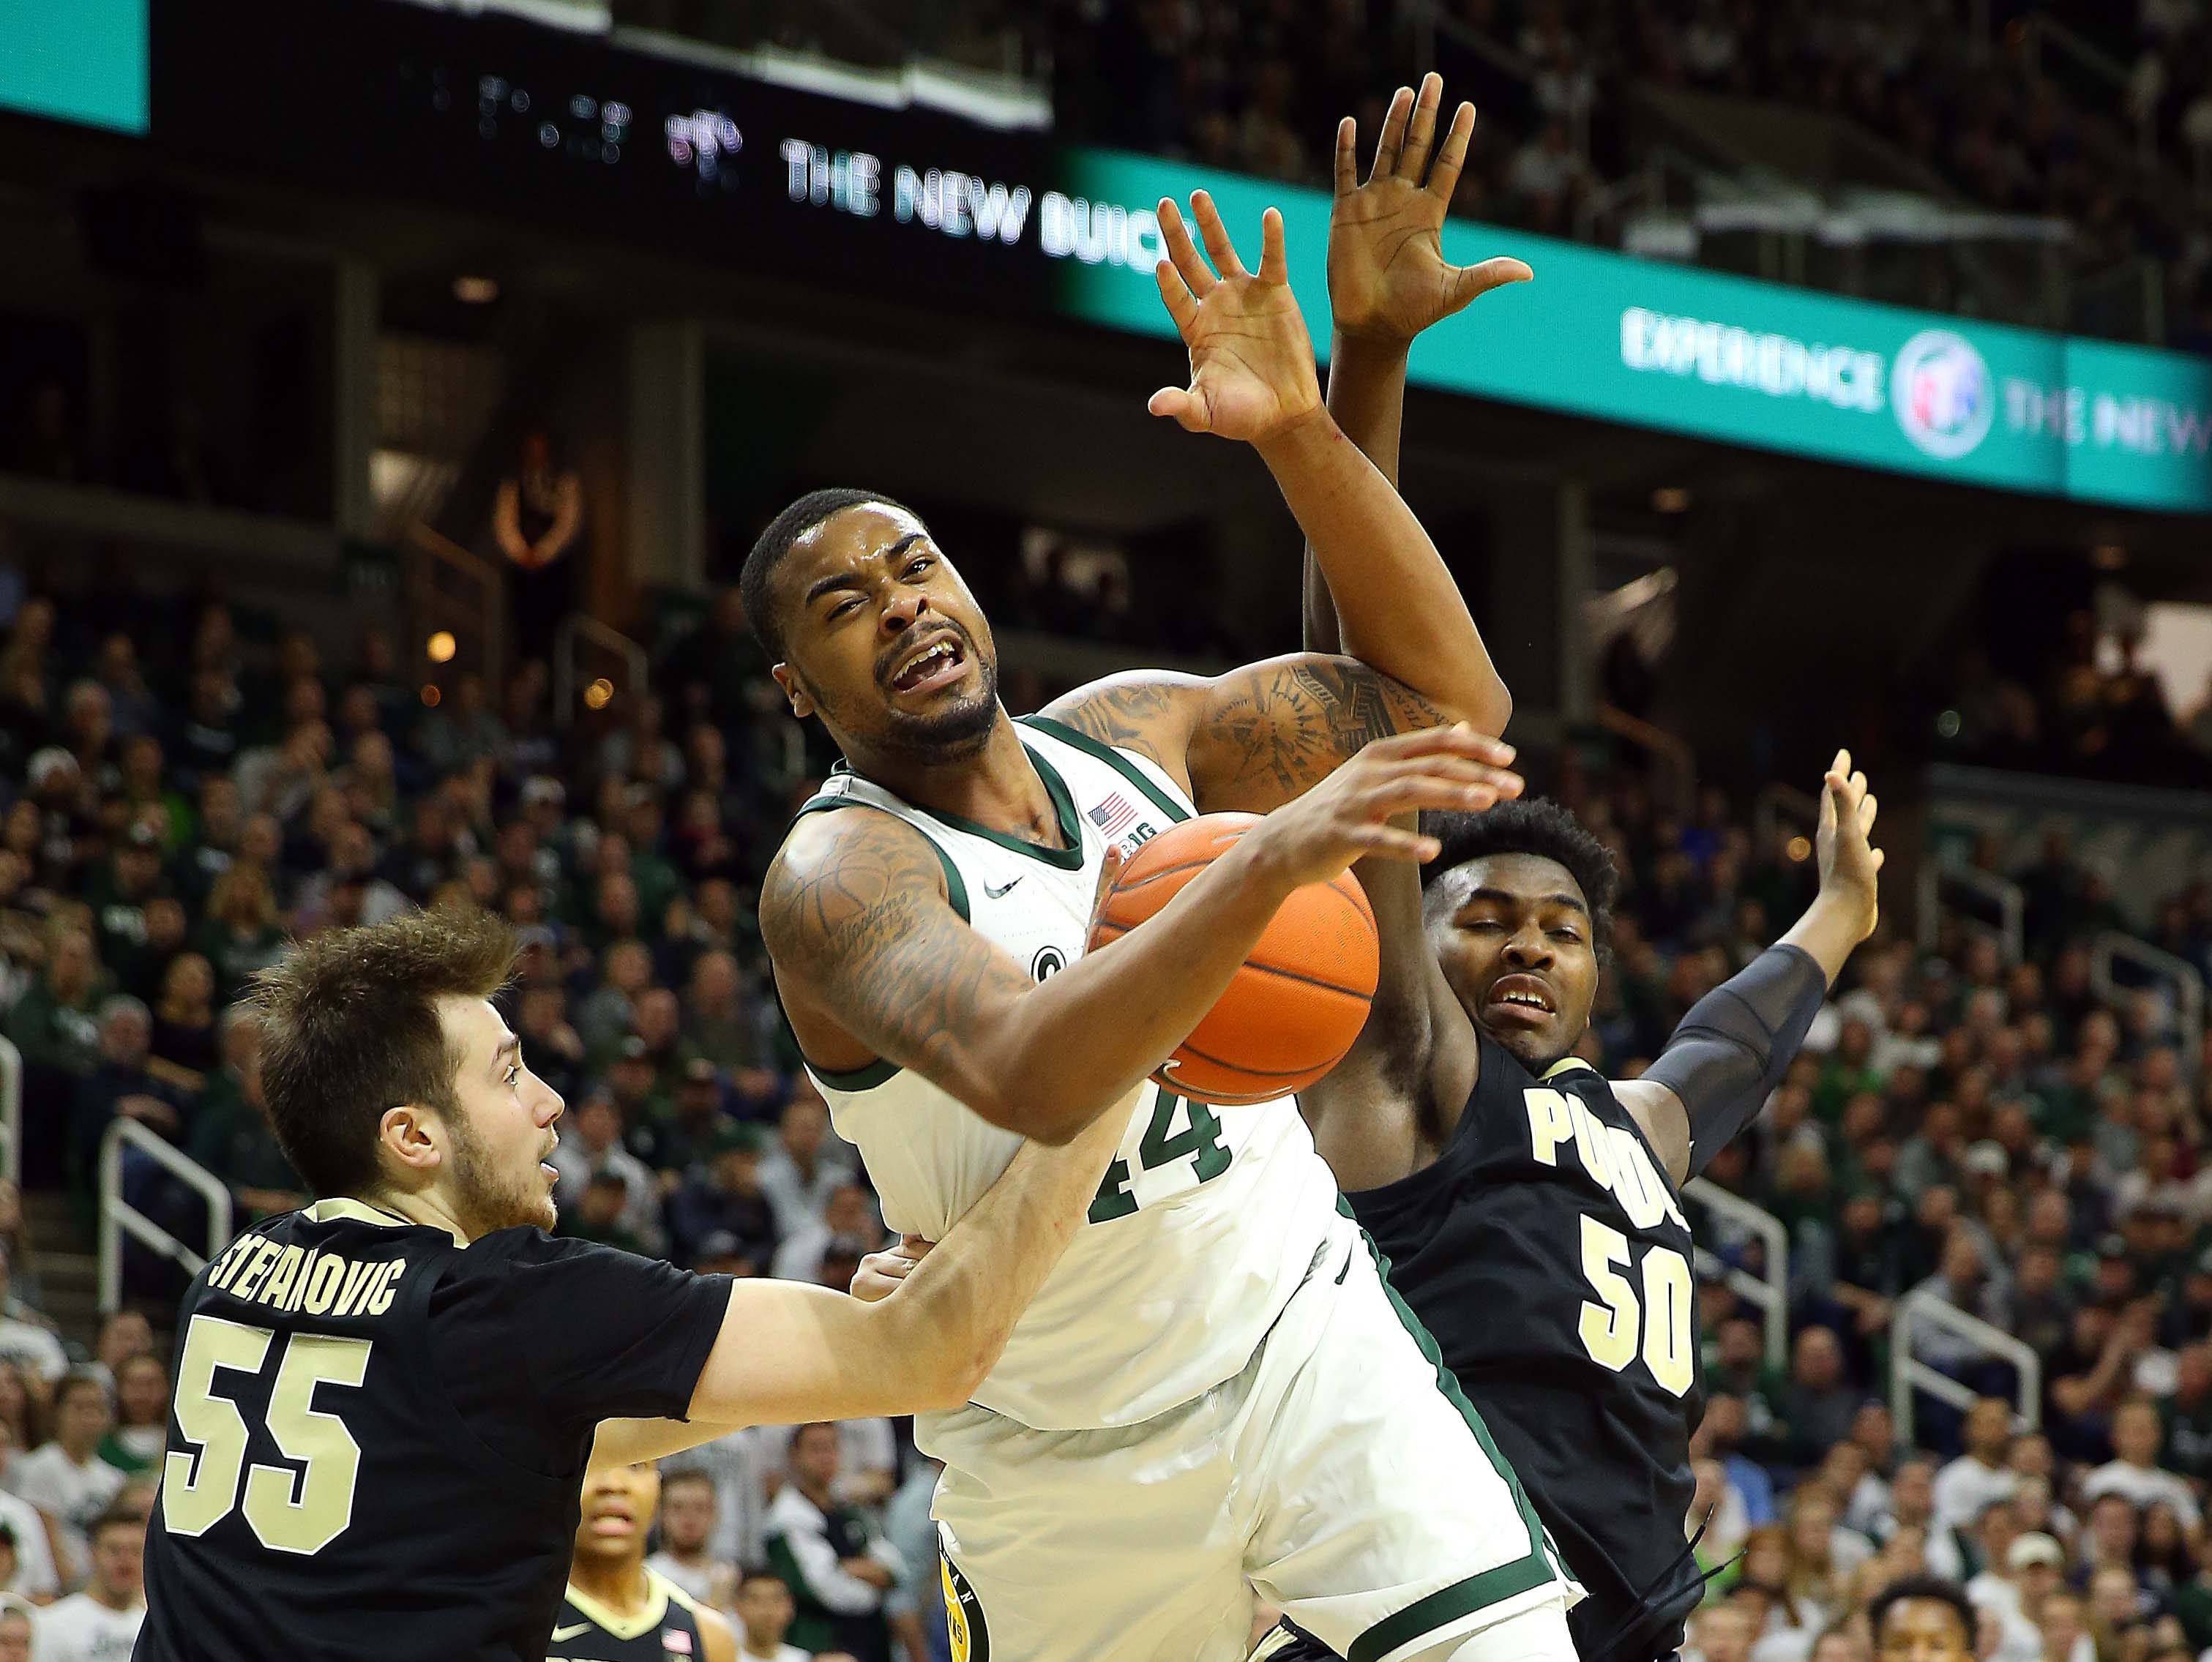 Jan 8, 2019; East Lansing, MI, USA; Michigan State Spartans forward Nick Ward (44) splits the defense of Purdue Boilermakers guard Sasha Stefanovic (55) and Purdue Boilermakers forward Trevion Williams (50) during the second half of a game at the Breslin Center. Mandatory Credit: Mike Carter-USA TODAY Sports